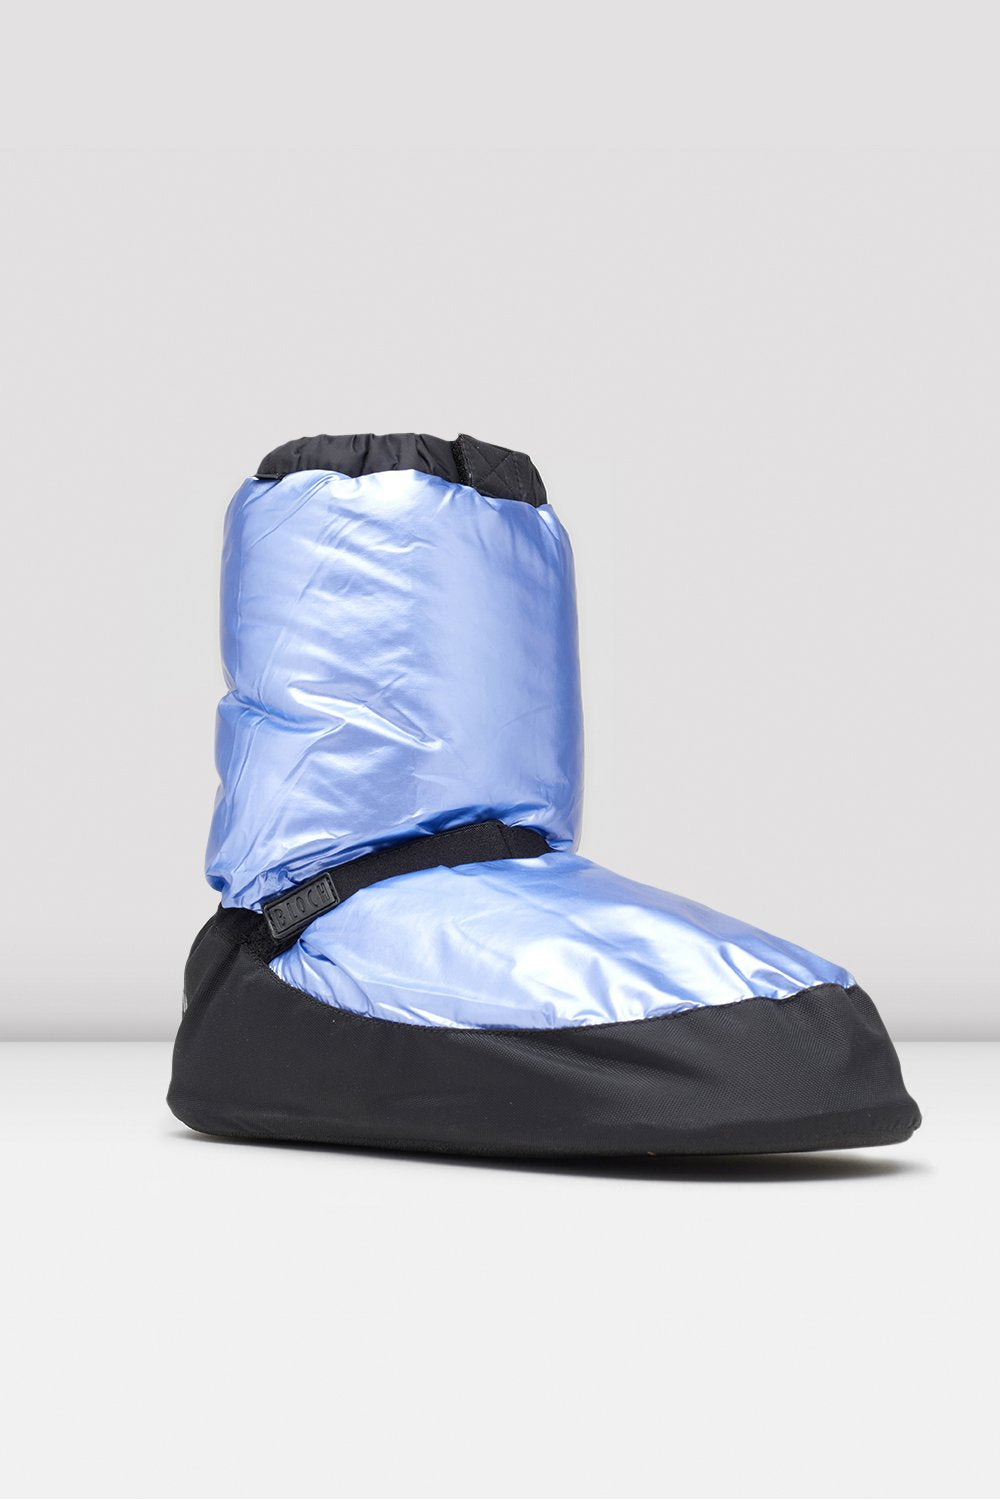 Light Blue Metallic Metallic Warm Up Booties single shoe side view focus on toe of shoe